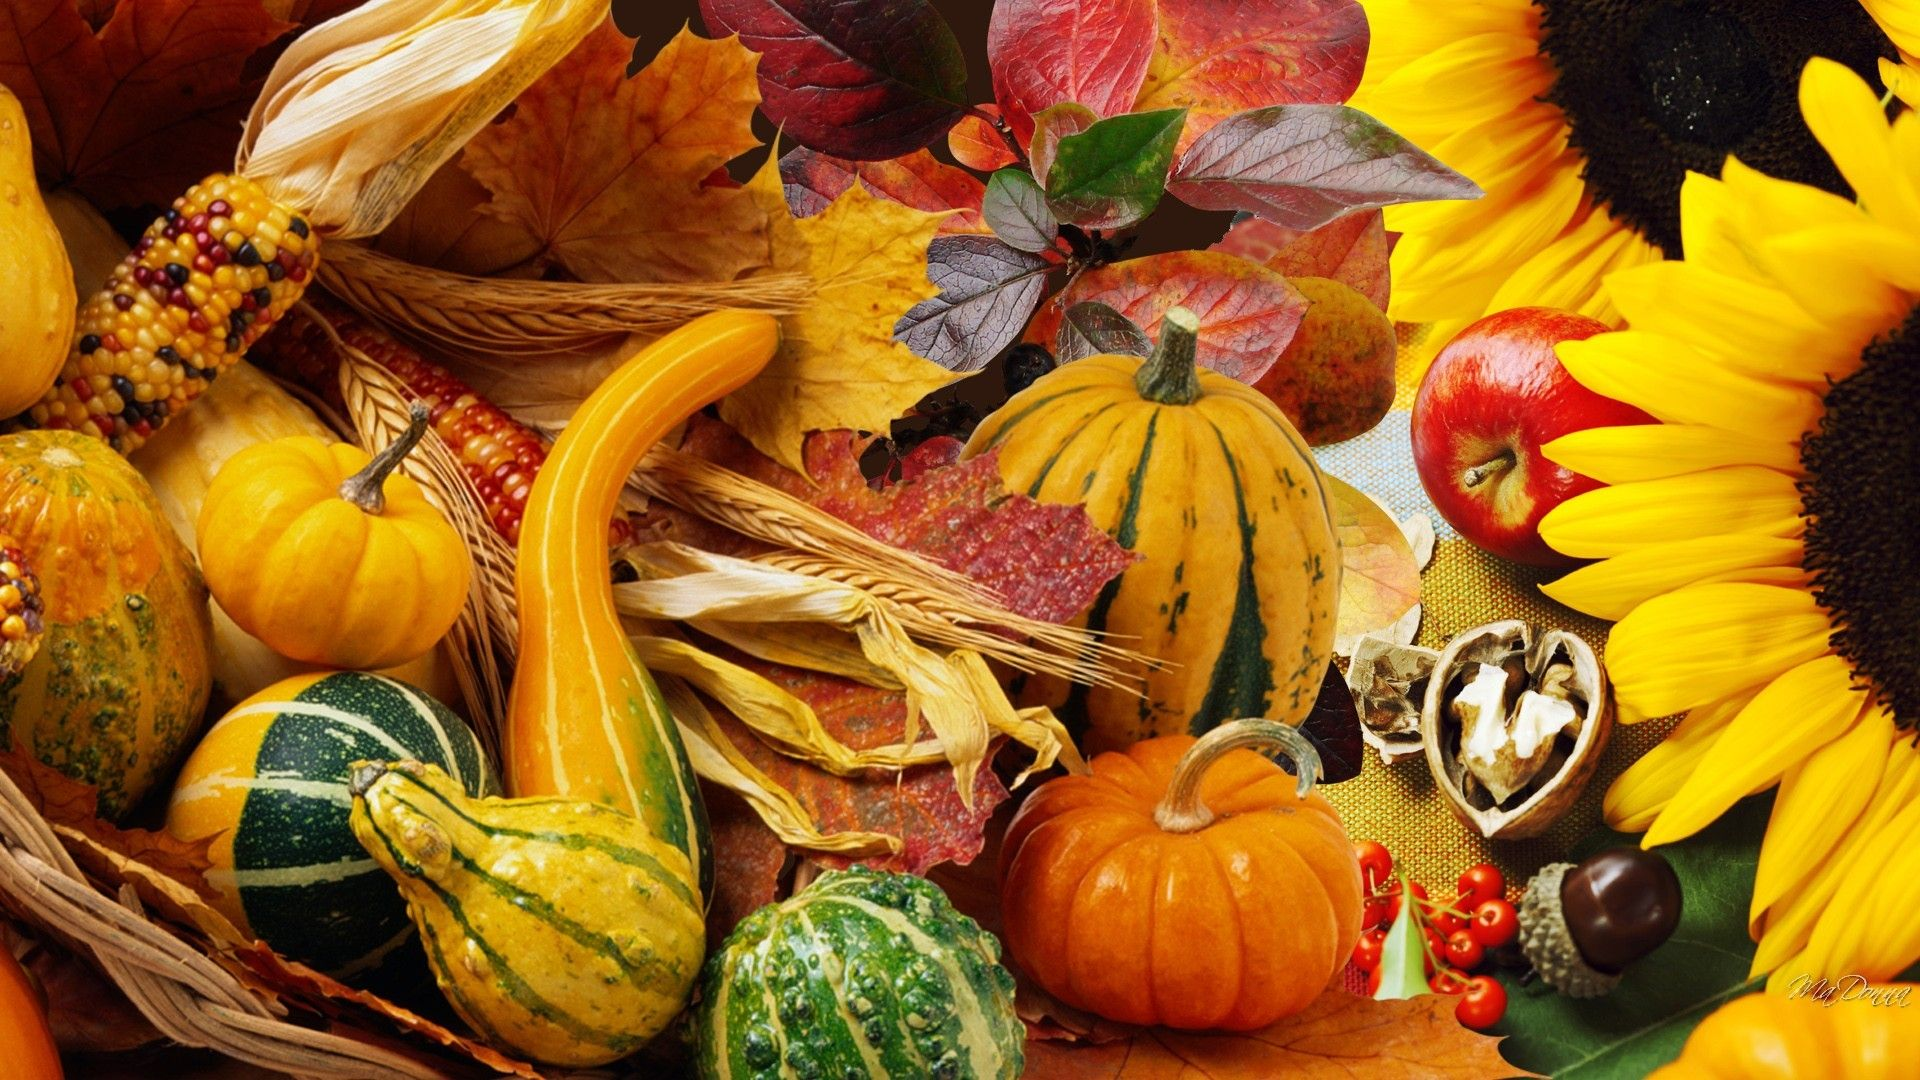 Thanksgiving Gourd Wallpapers   Top Thanksgiving Gourd 1920x1080